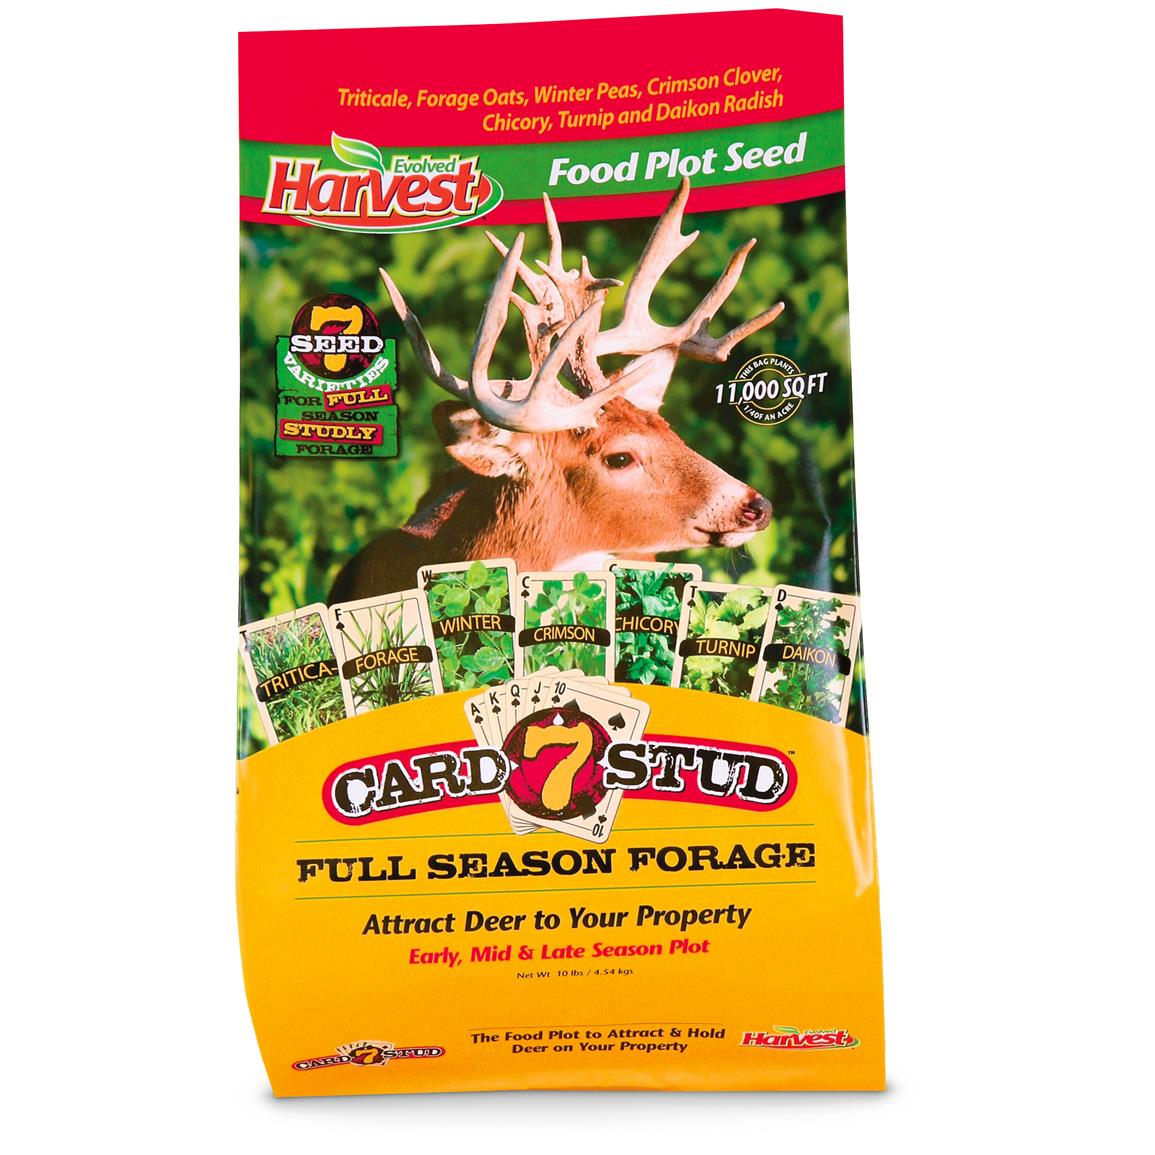 Blended with carefully selected forage plants chosen for hardiness, ease of growth and attracting power